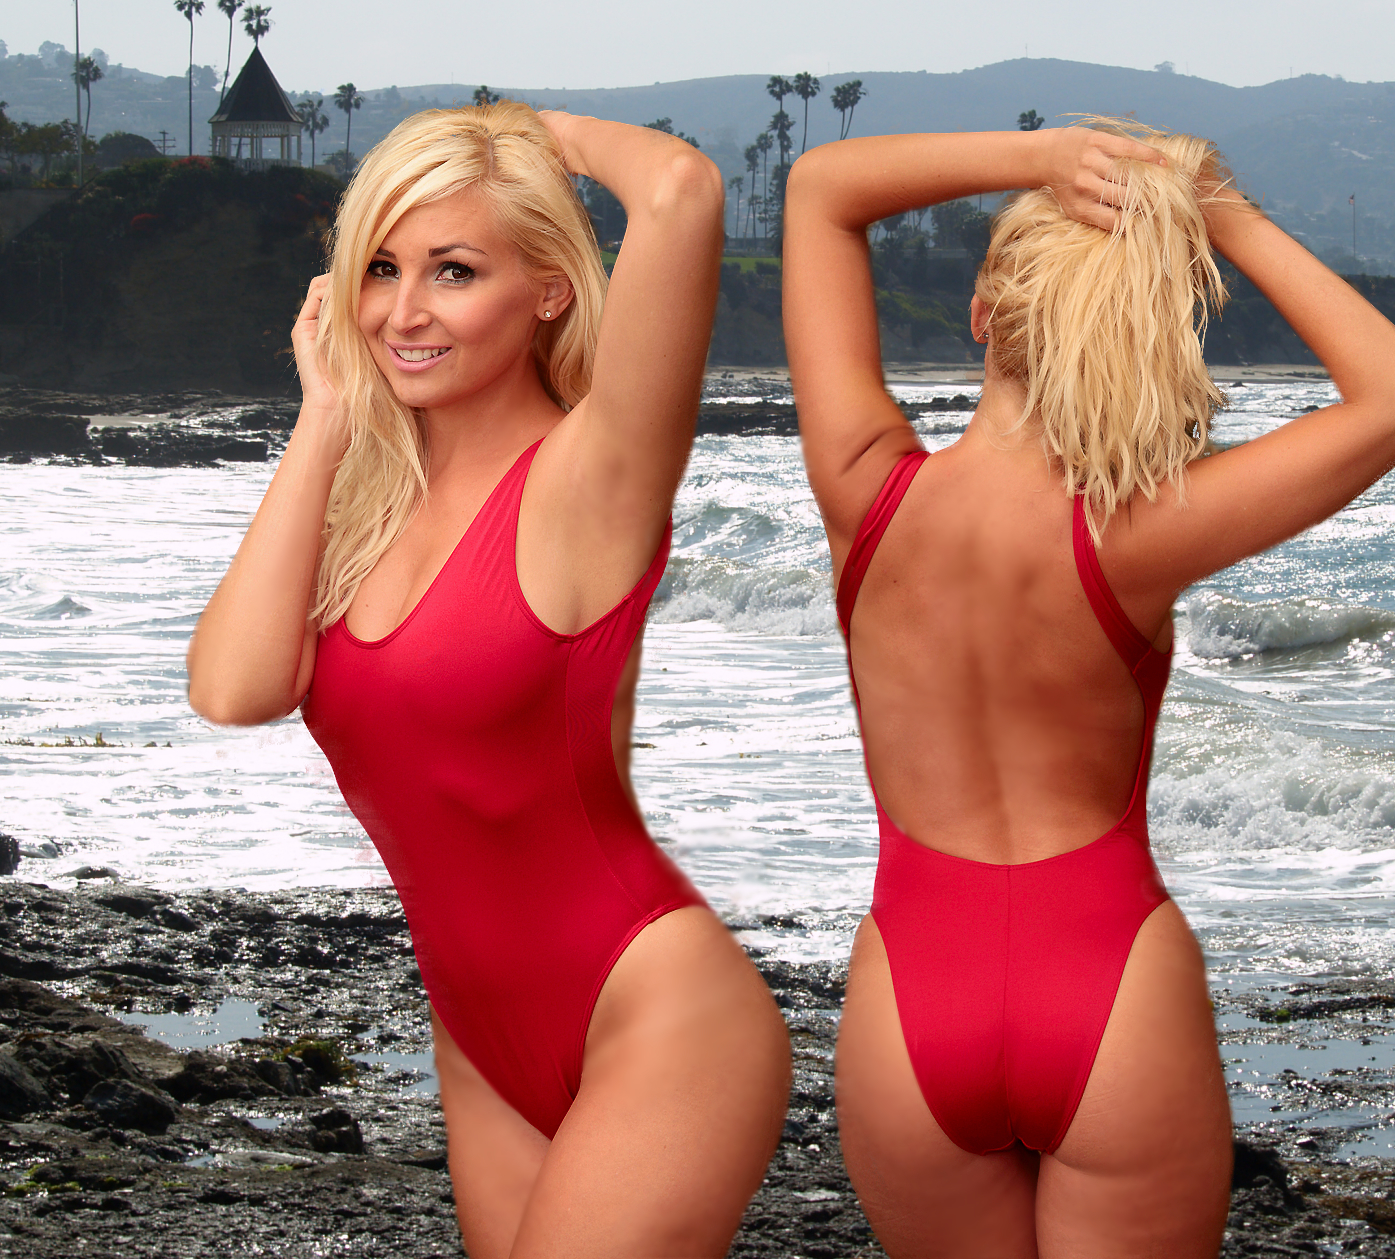 SWIMSUITS. Displaying 1 to 63 (of 63 products) Buy Now. ADELE Hot Brazilian Thong Swimsuit. $ Buy Now. AMBER Sexy G-String Swimsuit. $ Buy Now. AMERICAN HOT SWIMSUIT. $ Buy Now. ANGEL Very Sexy Swimsuit. $ Buy Now. .